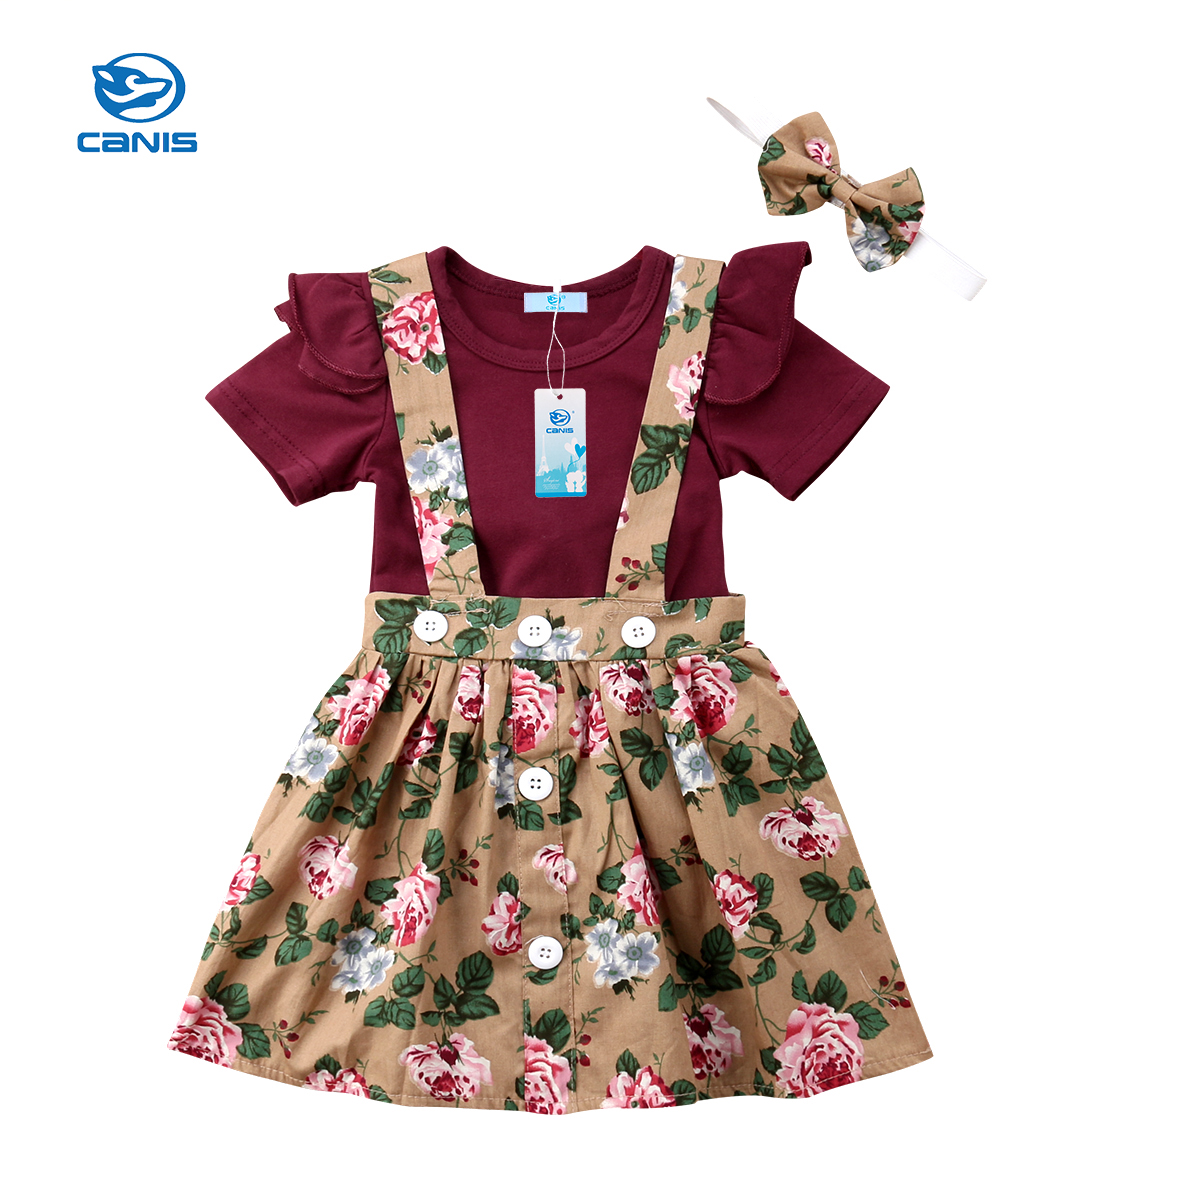 2018 Summer New Fashion Cute Sweet 3PCS Newborn Baby Girl Short Fly Sleeve Romper Floral Belt Dress Outfit